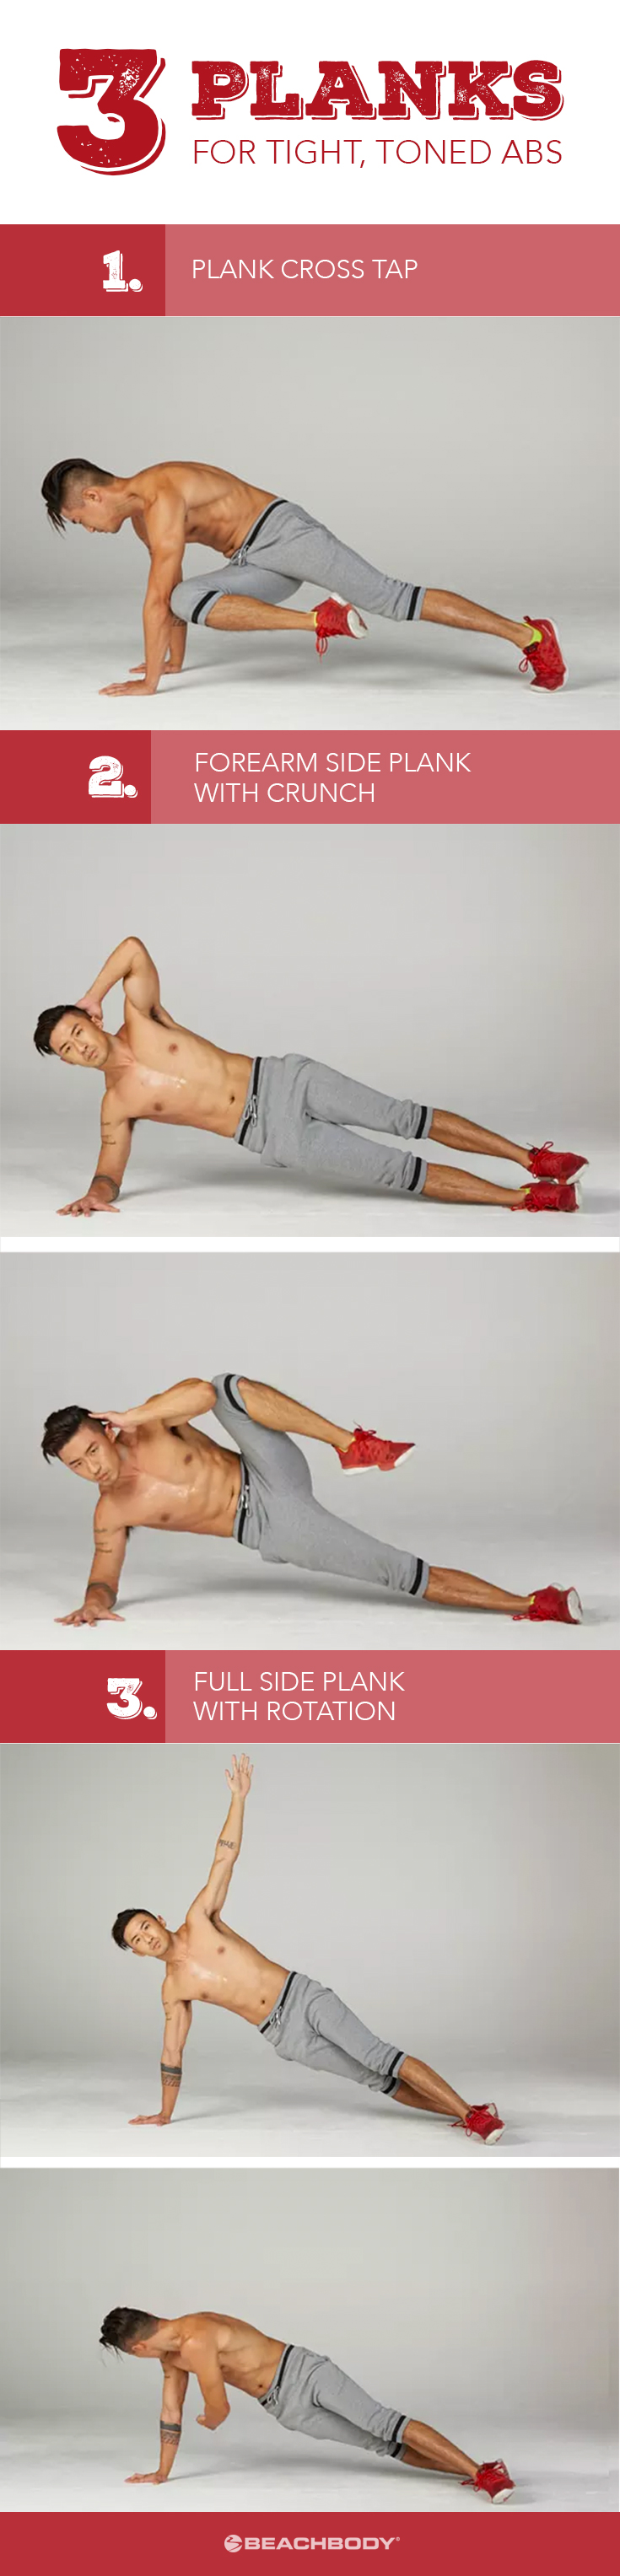 Plank Exercises Benefits Are Many The Is One Of Best Overall Core Conditioners